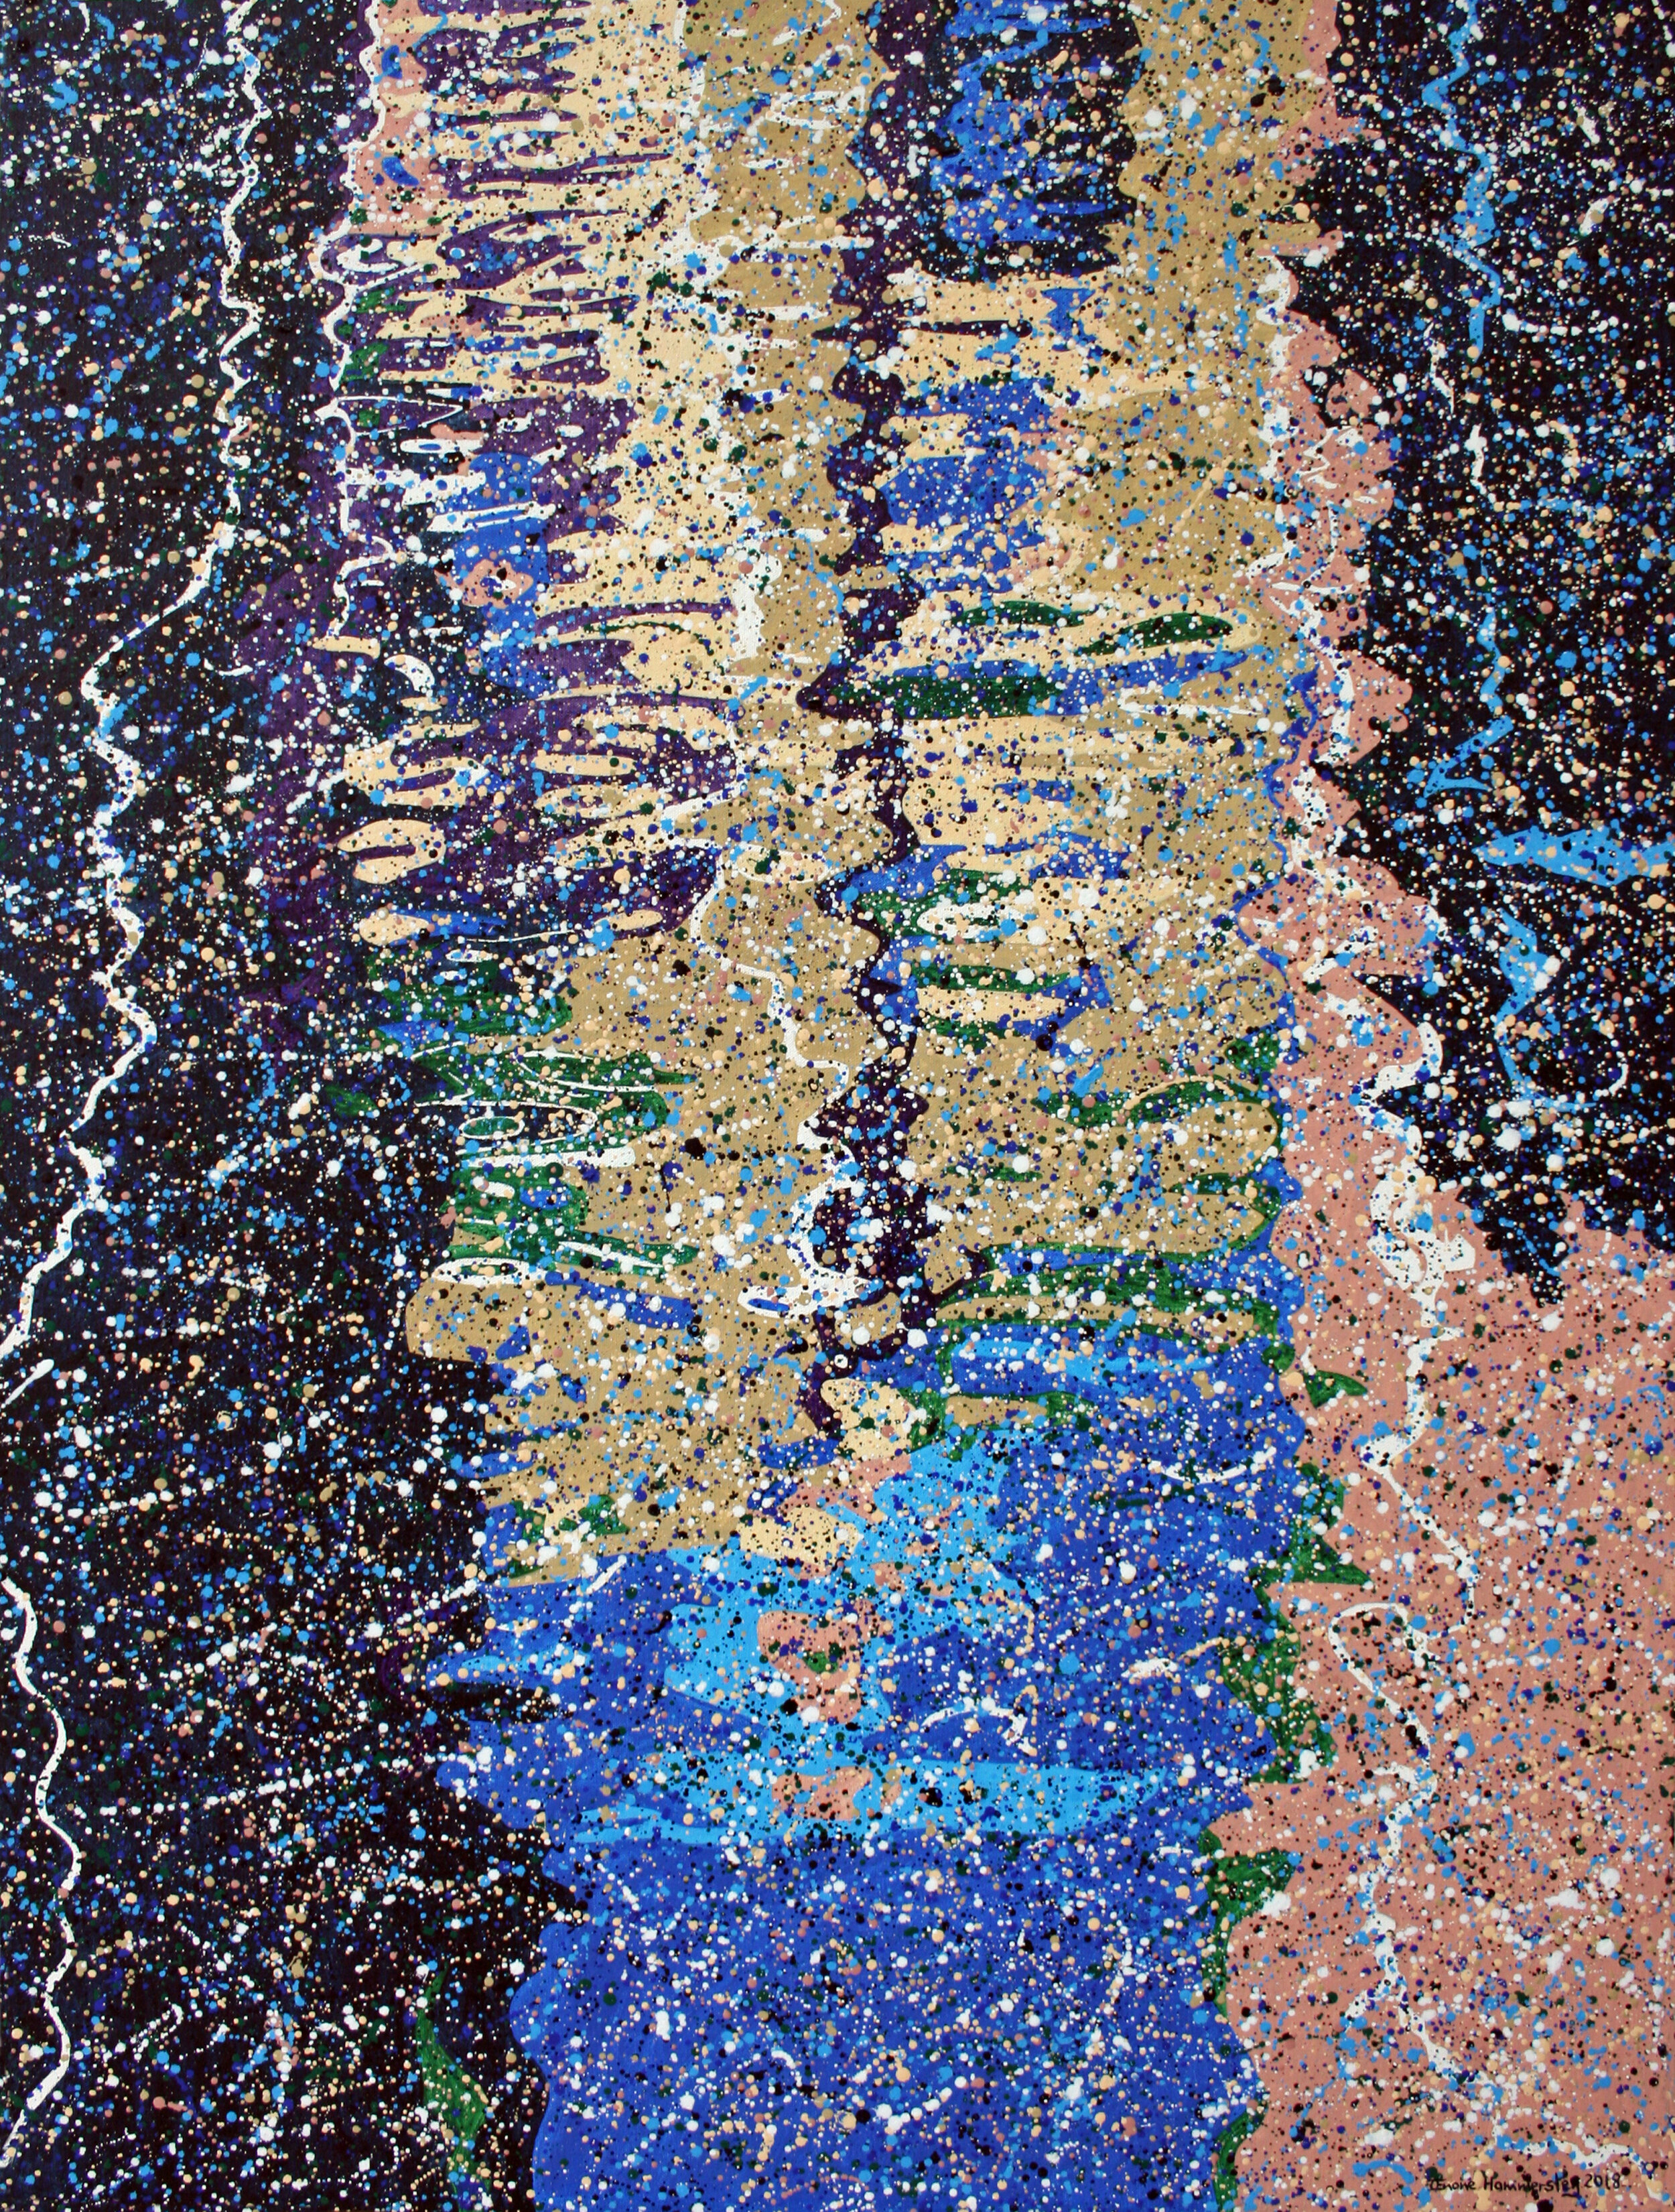 Water-based pointillistic abstraction painting with fragmented shapes and lines. Black, yellow, pink, blue and green areas.